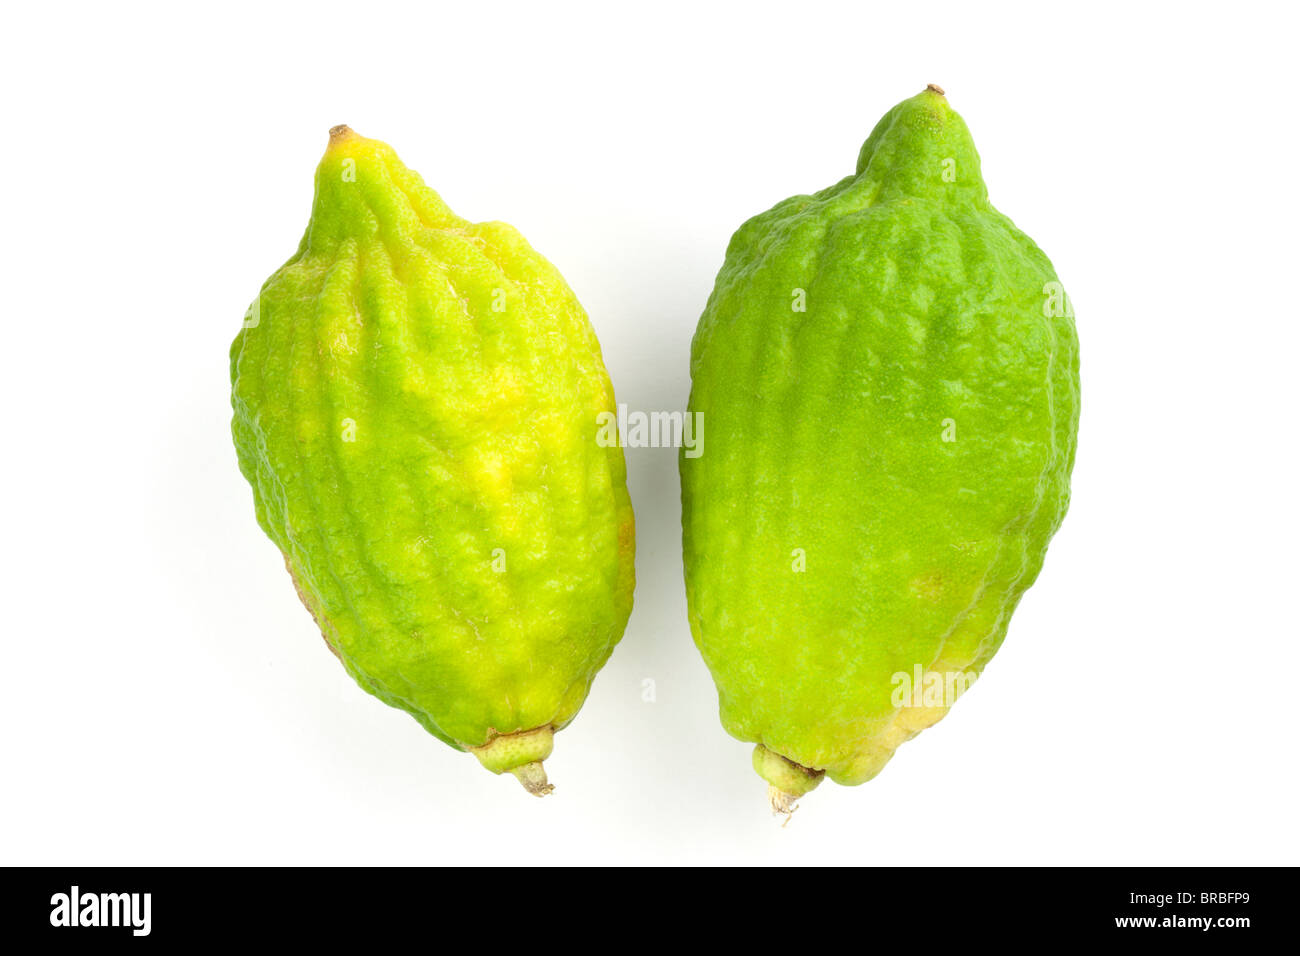 two kaffir limes on a white background - Stock Image